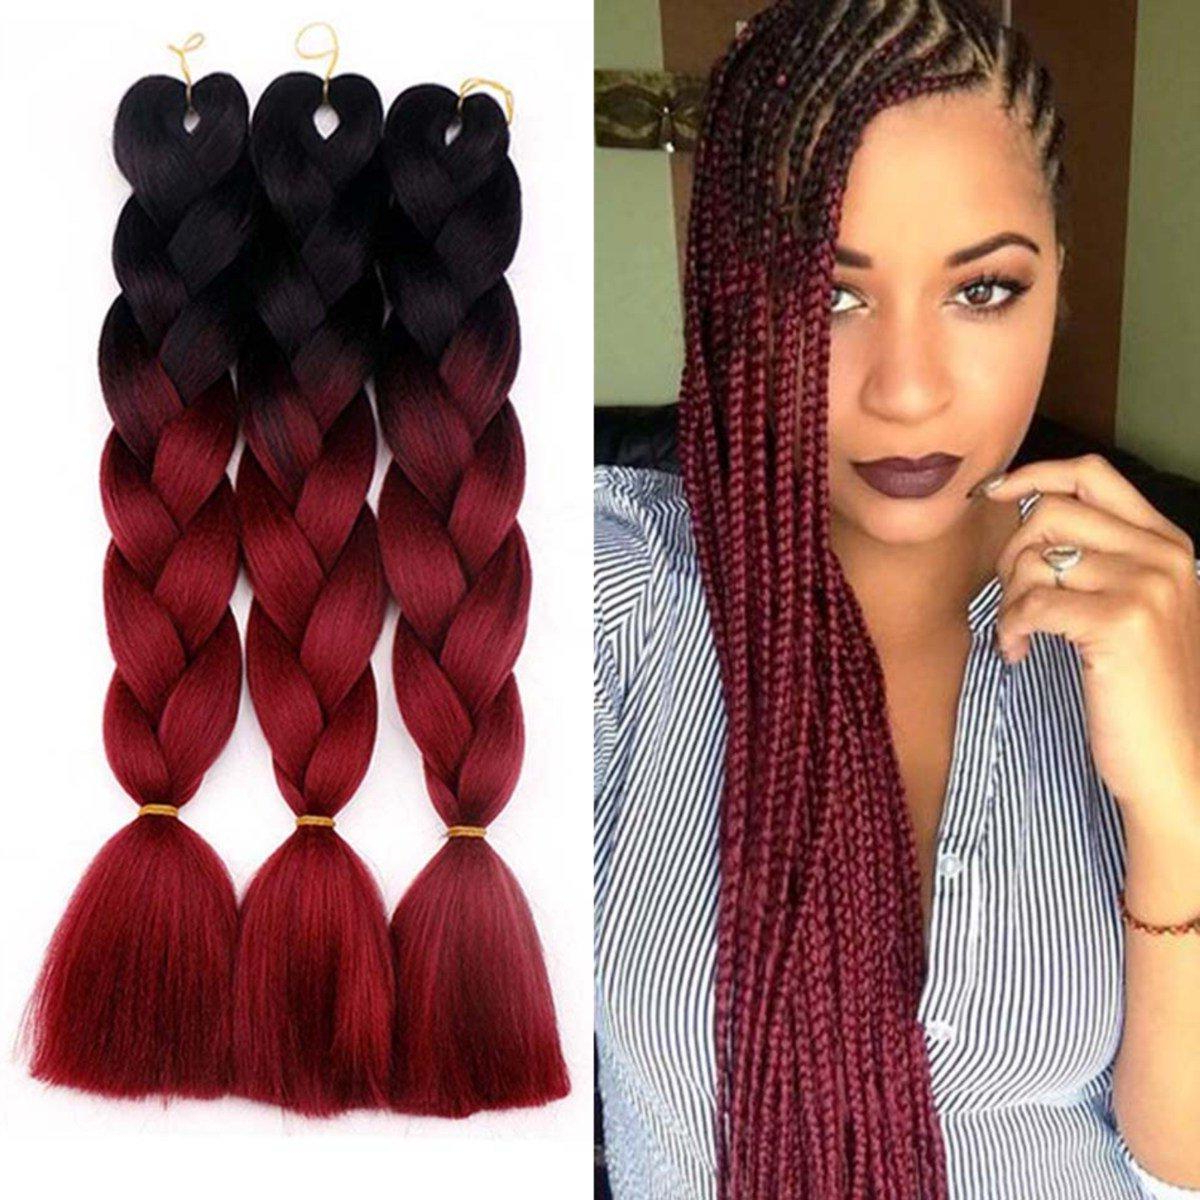 2020 Straight Mini Braids With Ombre Regarding Hot! 1Pcs 24Inches 2 Tone Jumbo Braid Ombre Braiding Hair X Pression Hair  Extensions Afro Box Braids Crochet Hair Synthetic Fiber Braids (View 3 of 20)